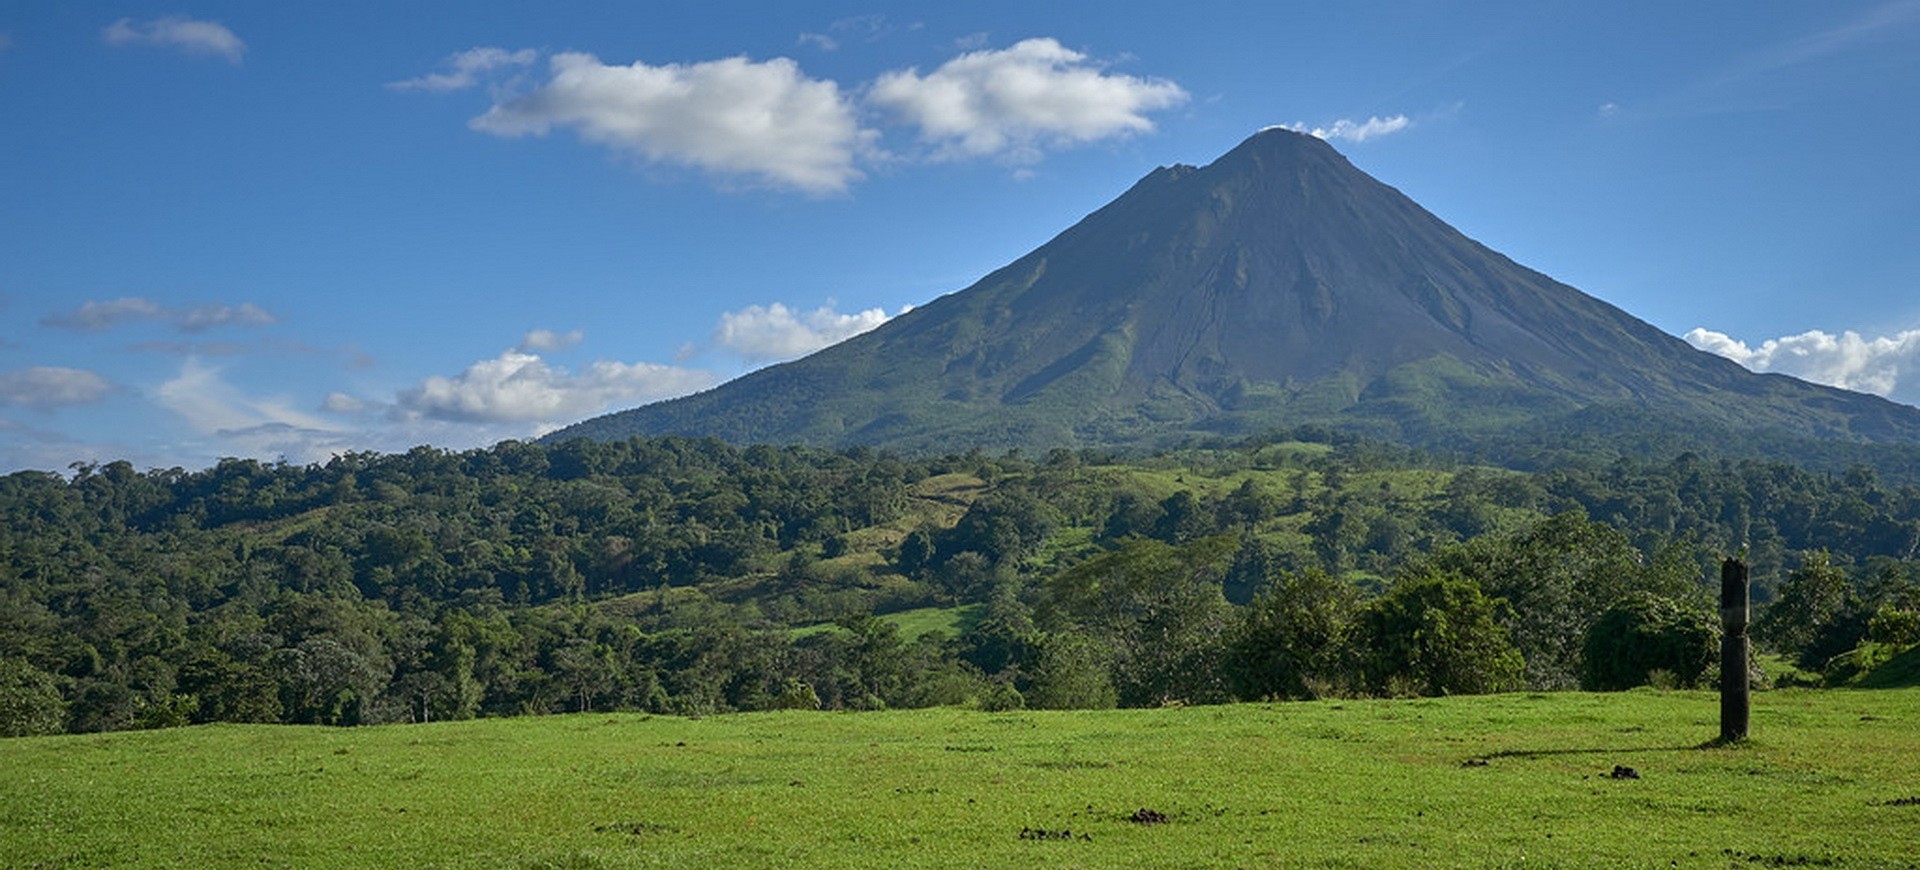 Volcan Arenal Volcan au Costa Rica